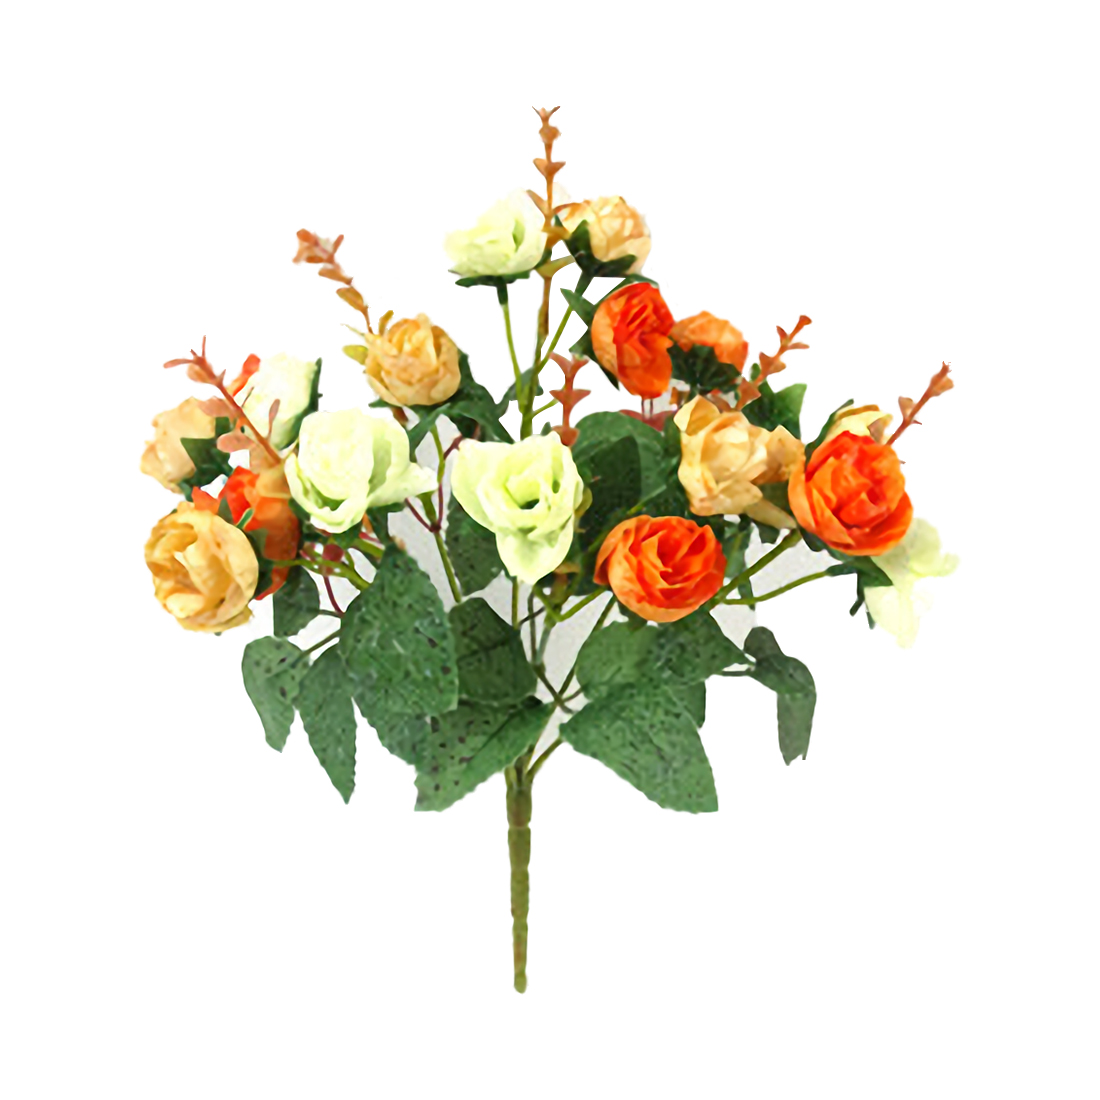 21 Heads Artificial Silk Cloth Rose Flowers Fake Leaf Wedding Bouquet Home Decoration, Orange